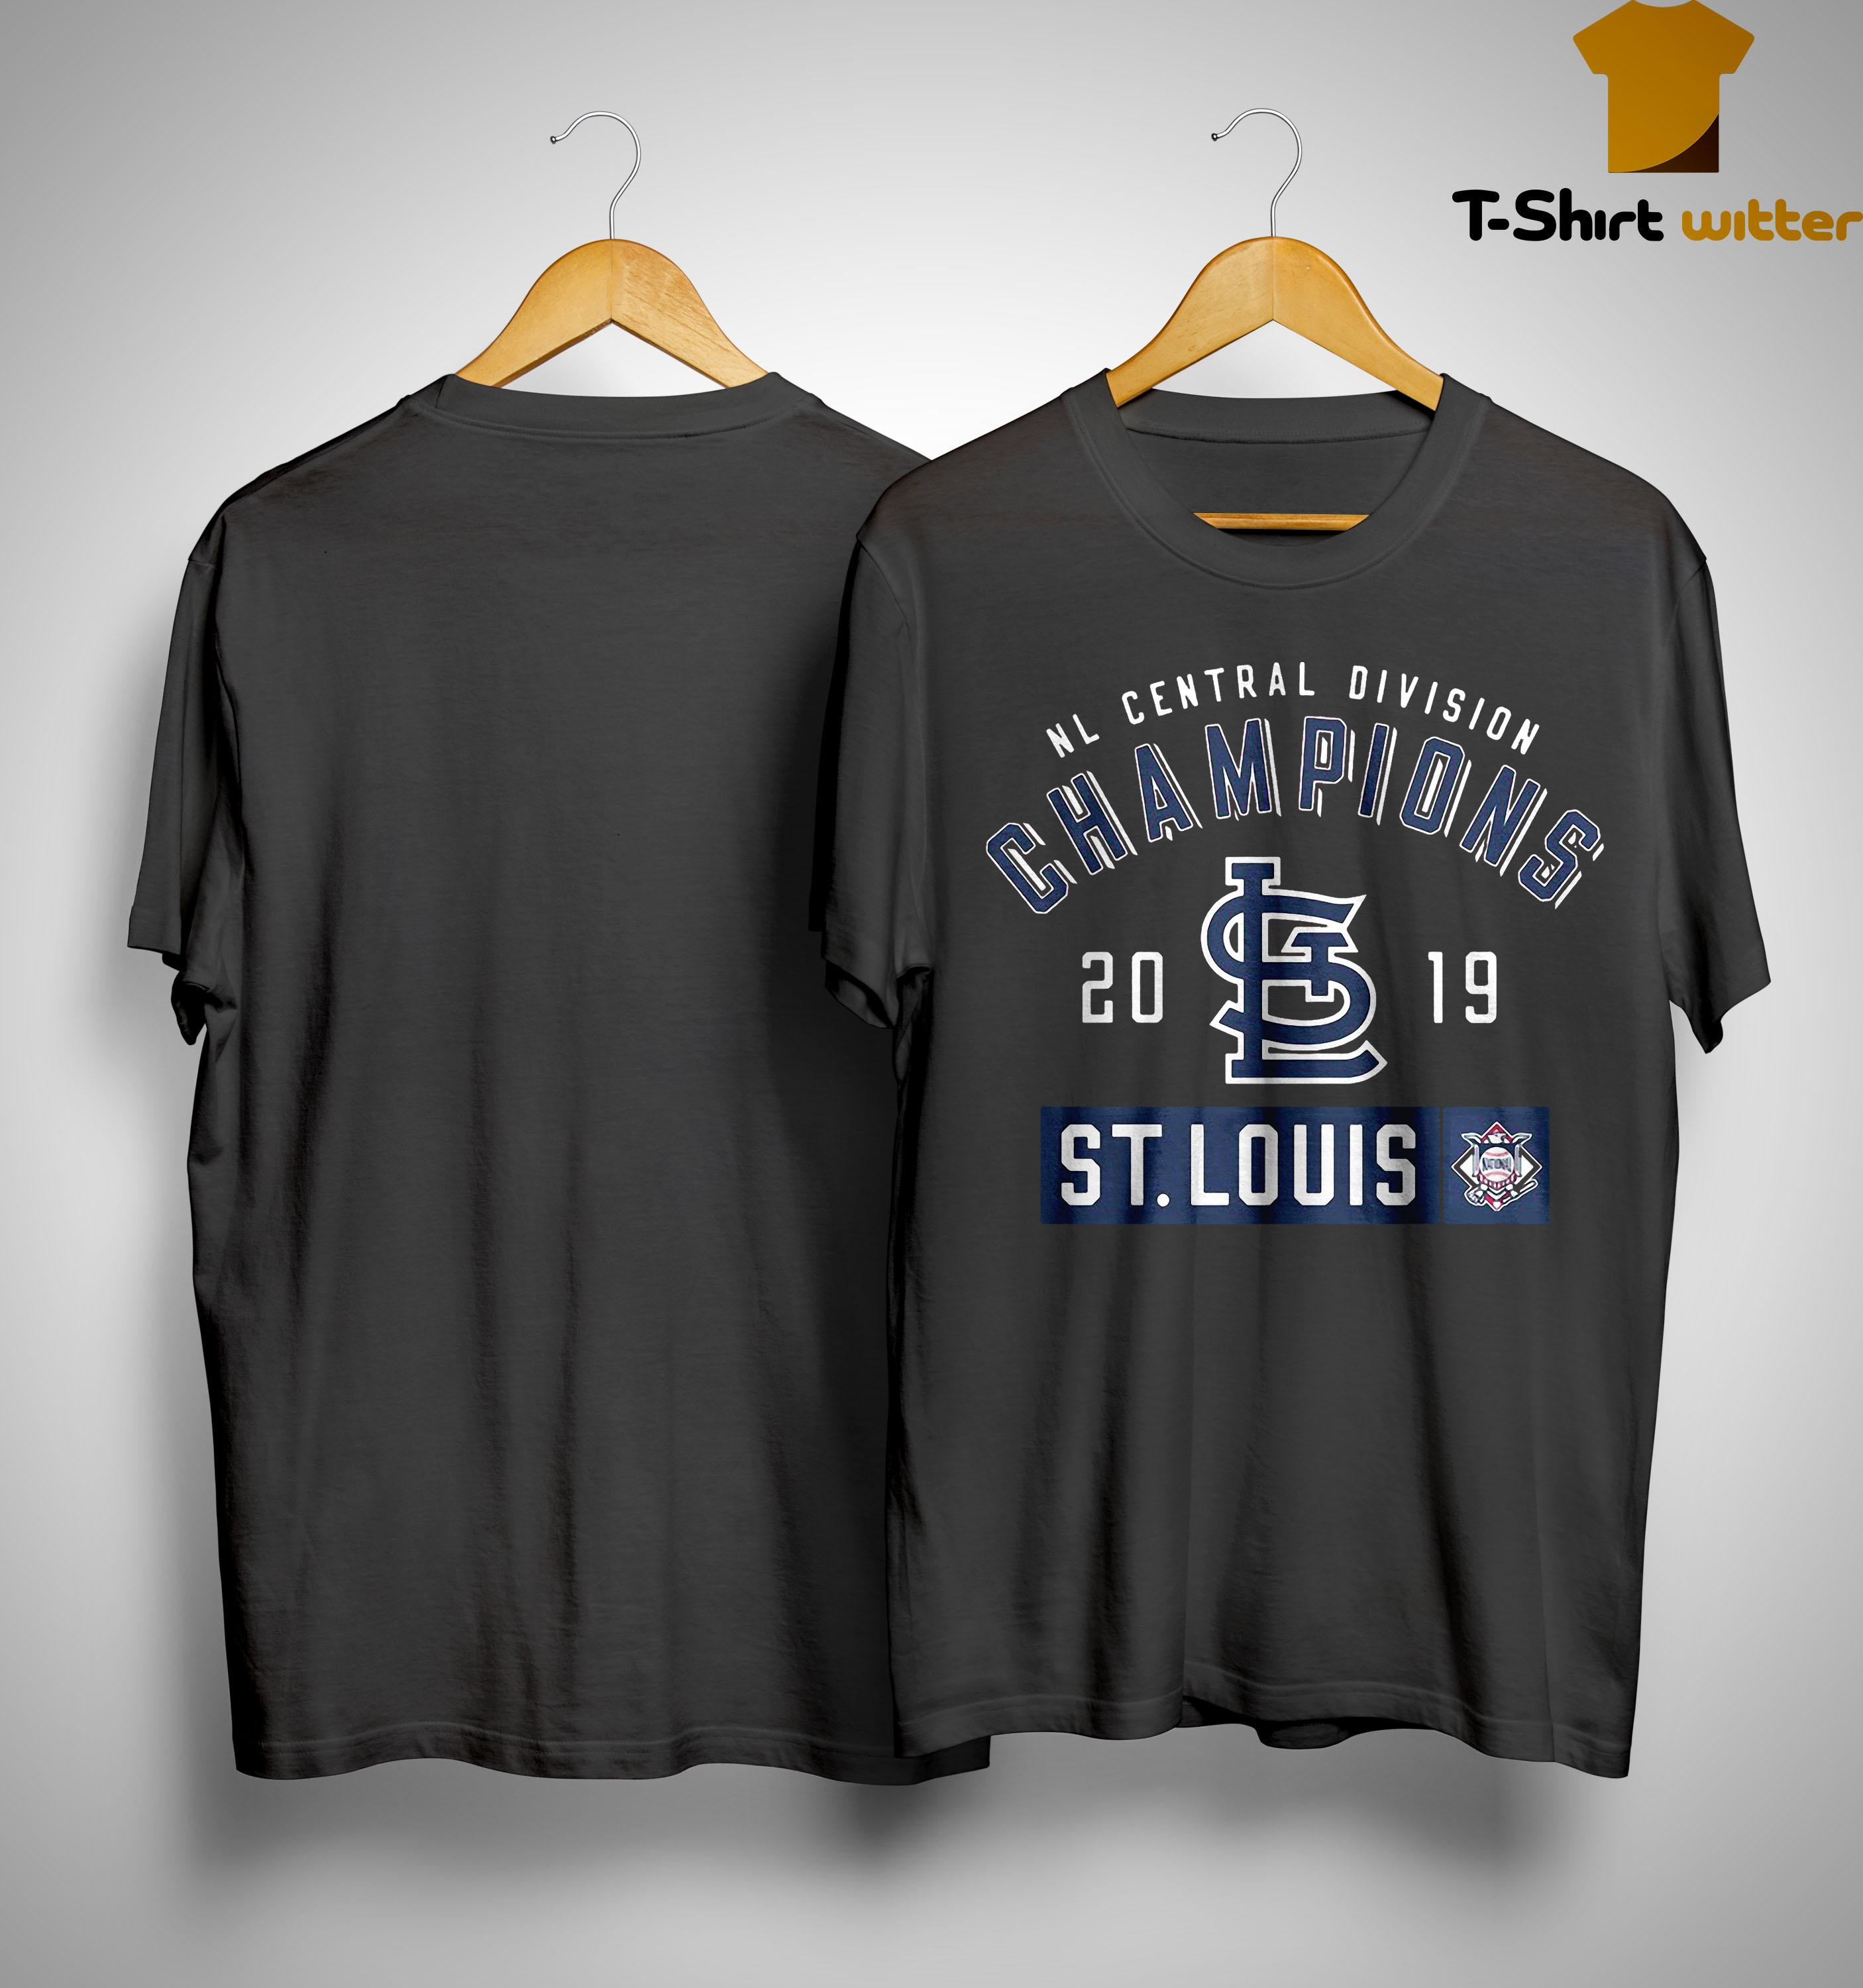 Nl Central Division Champions 2019 St Louis Shirt